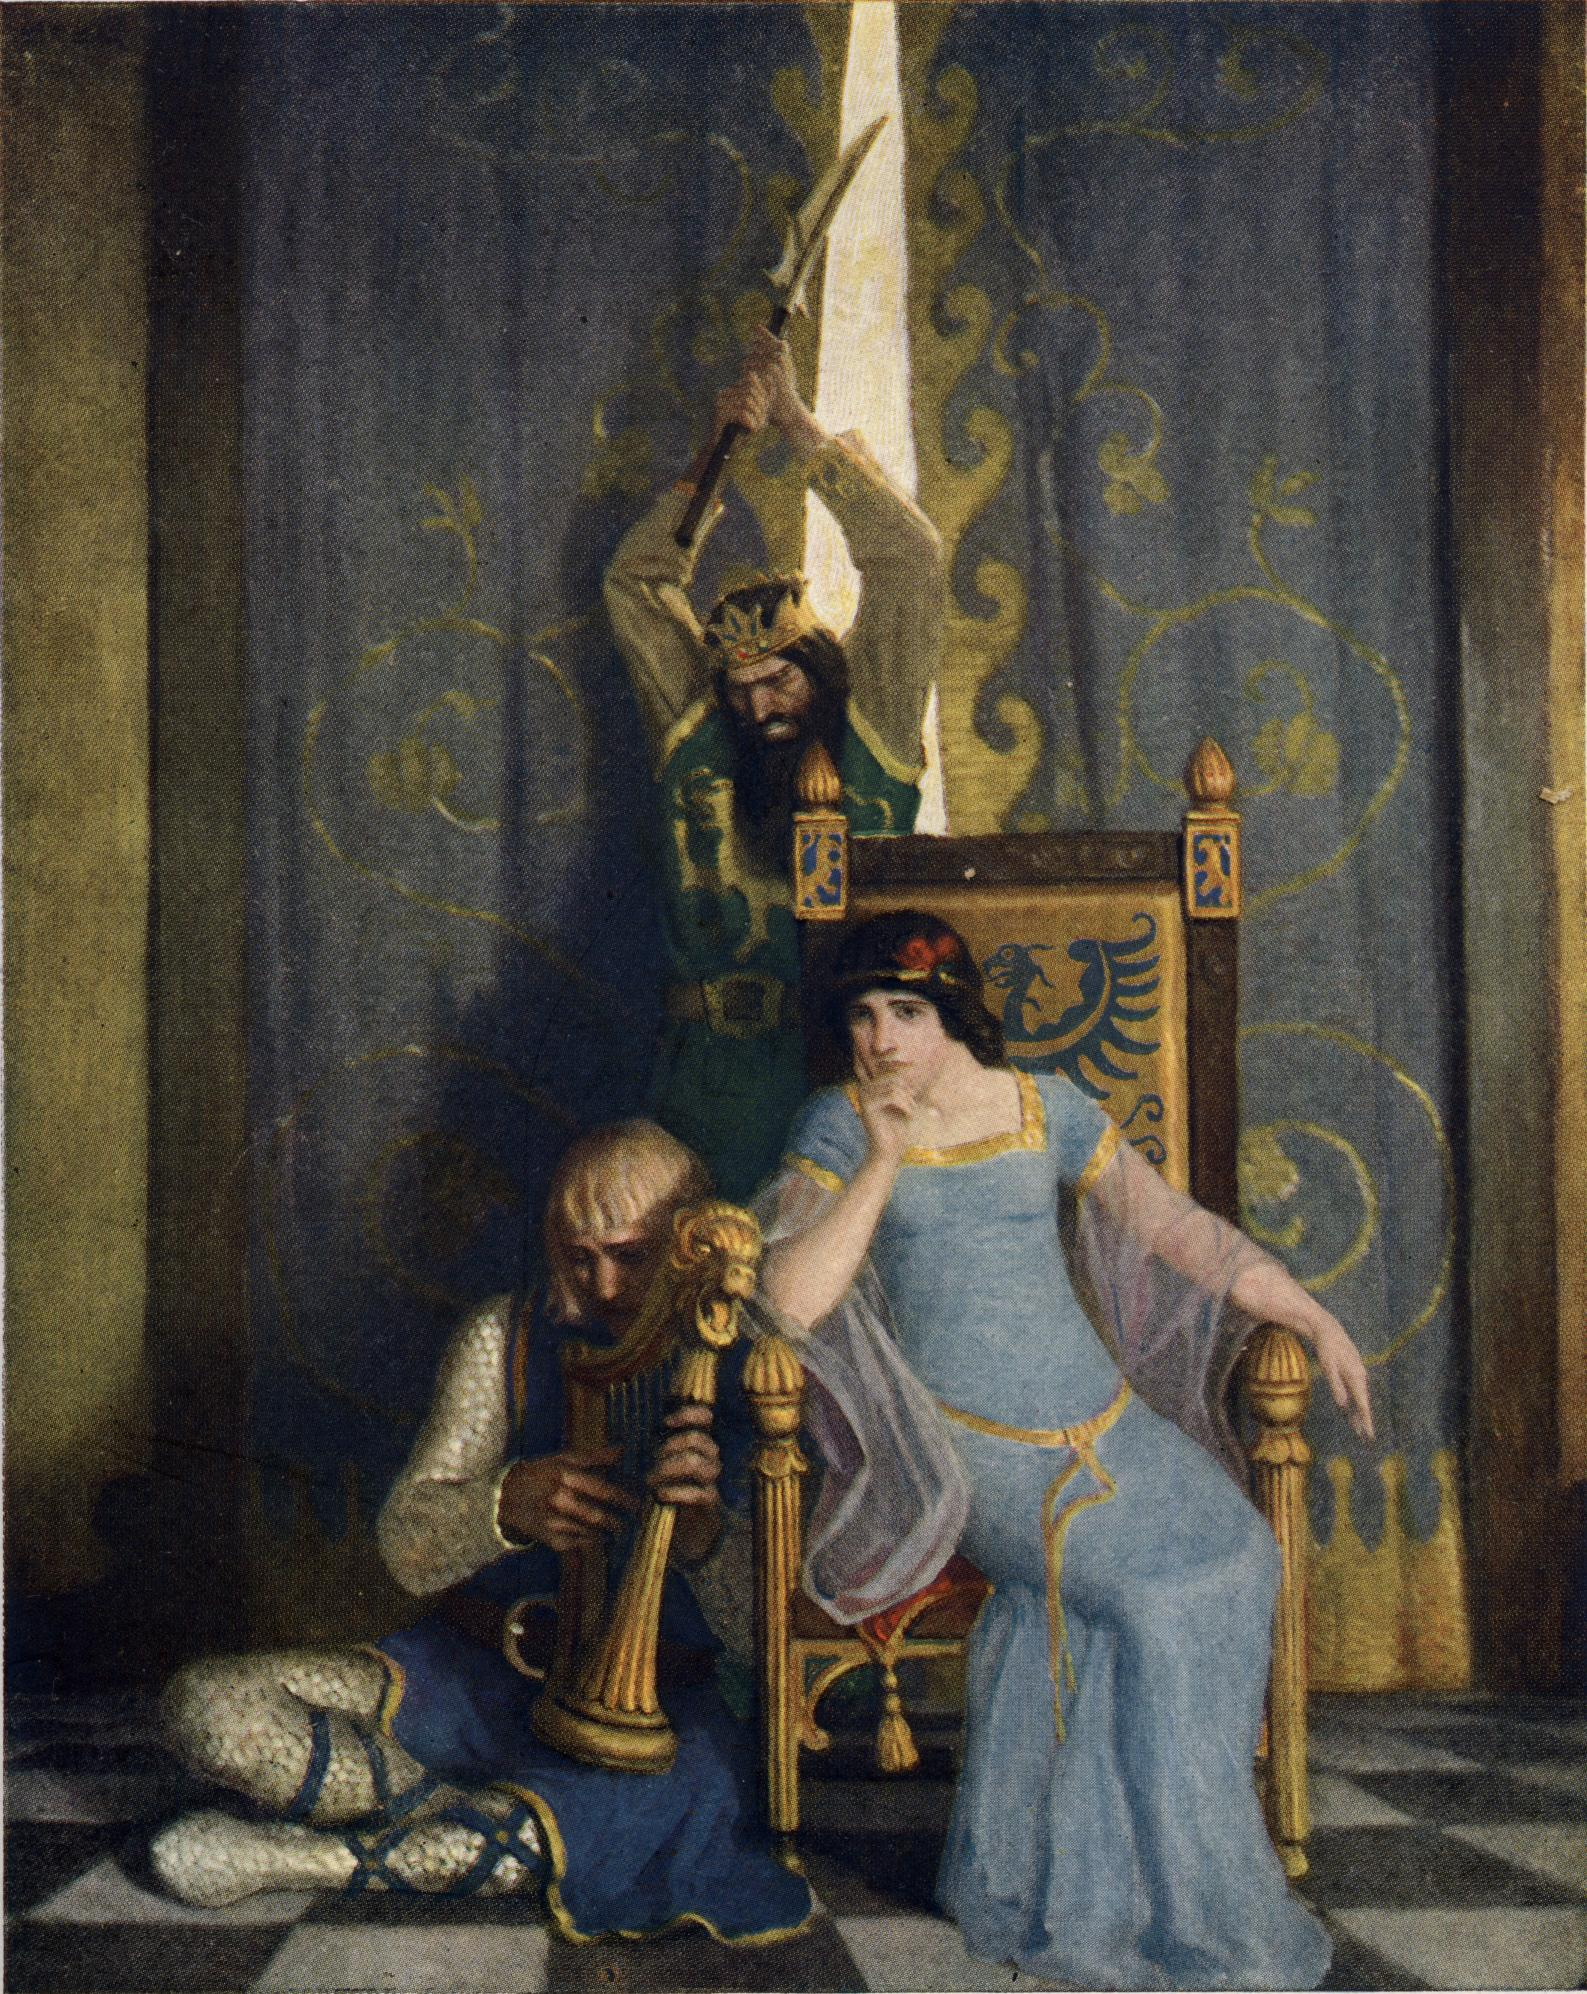 upload.wikimedia.org/wikipedia/commons/0/06/Boys_King_Arthur_-_N._C._Wyeth_-_p190.jpg